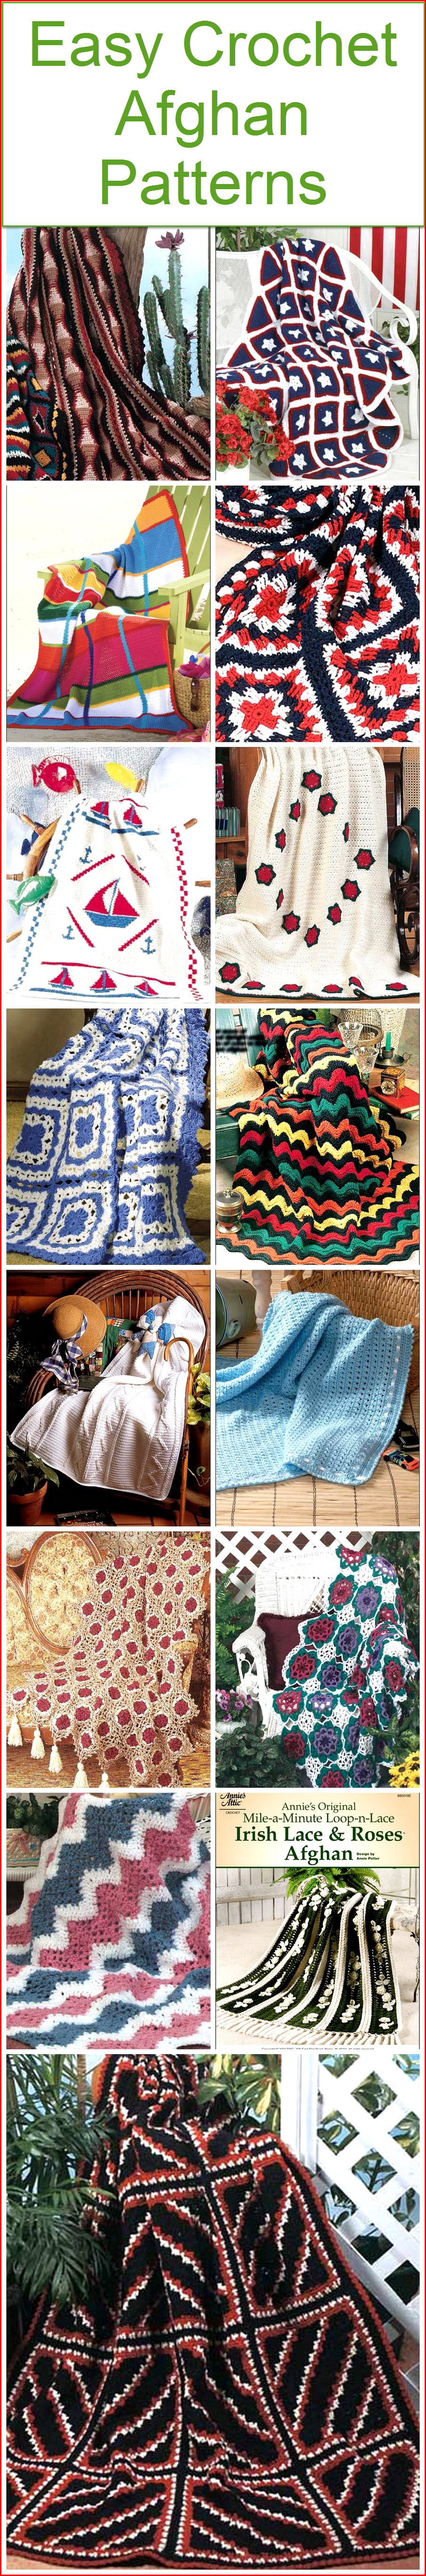 Easy Crochet Afghan Patterns | 1001 Crochet